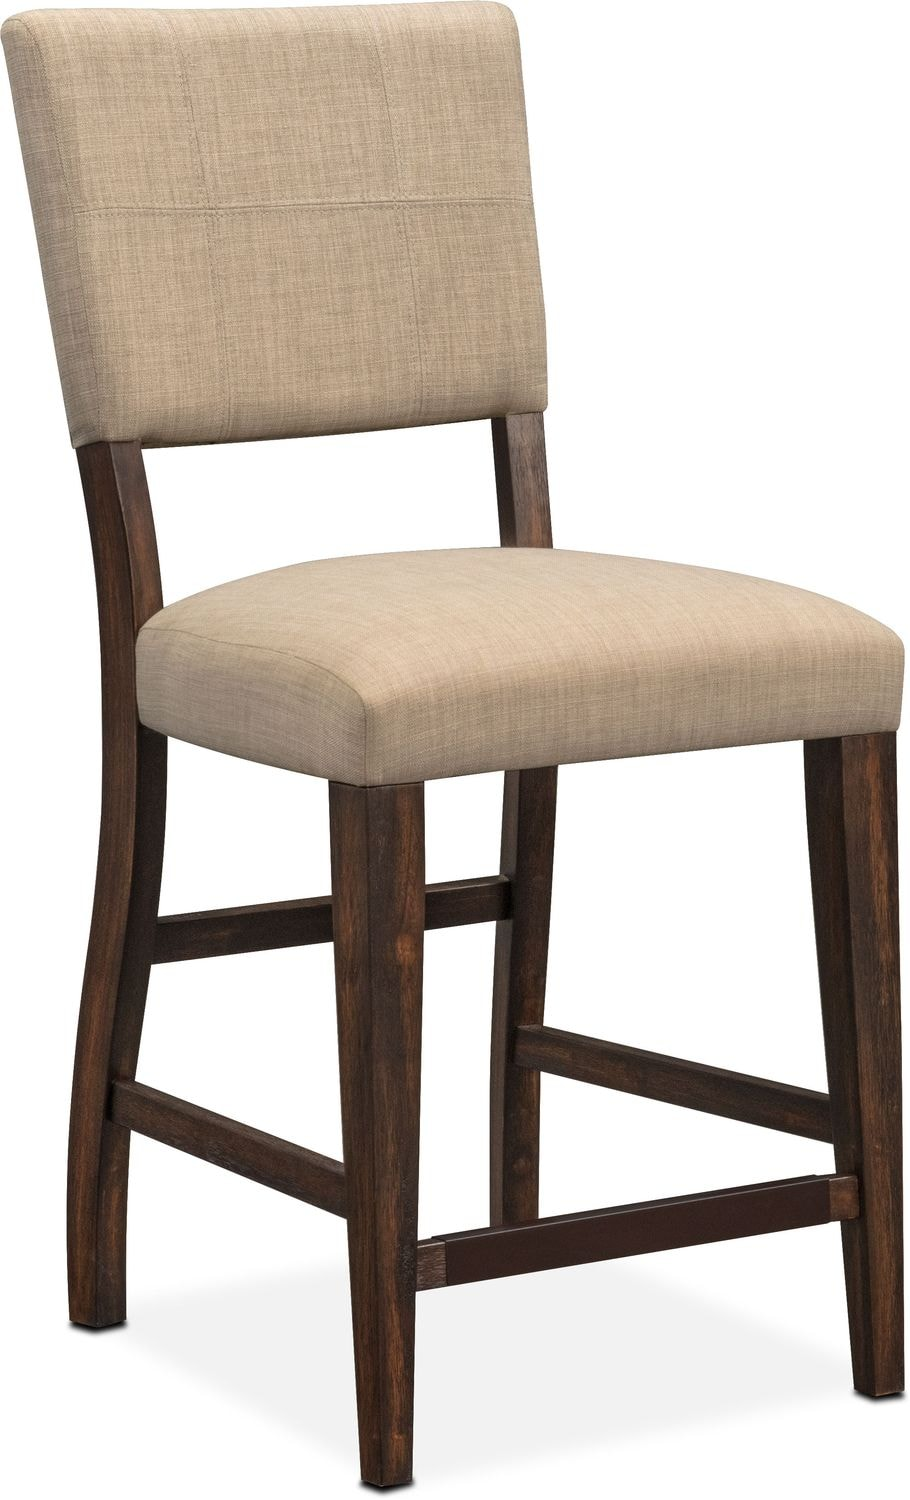 Dining Room Furniture - Tribeca Counter-Height Upholstered Side Chair